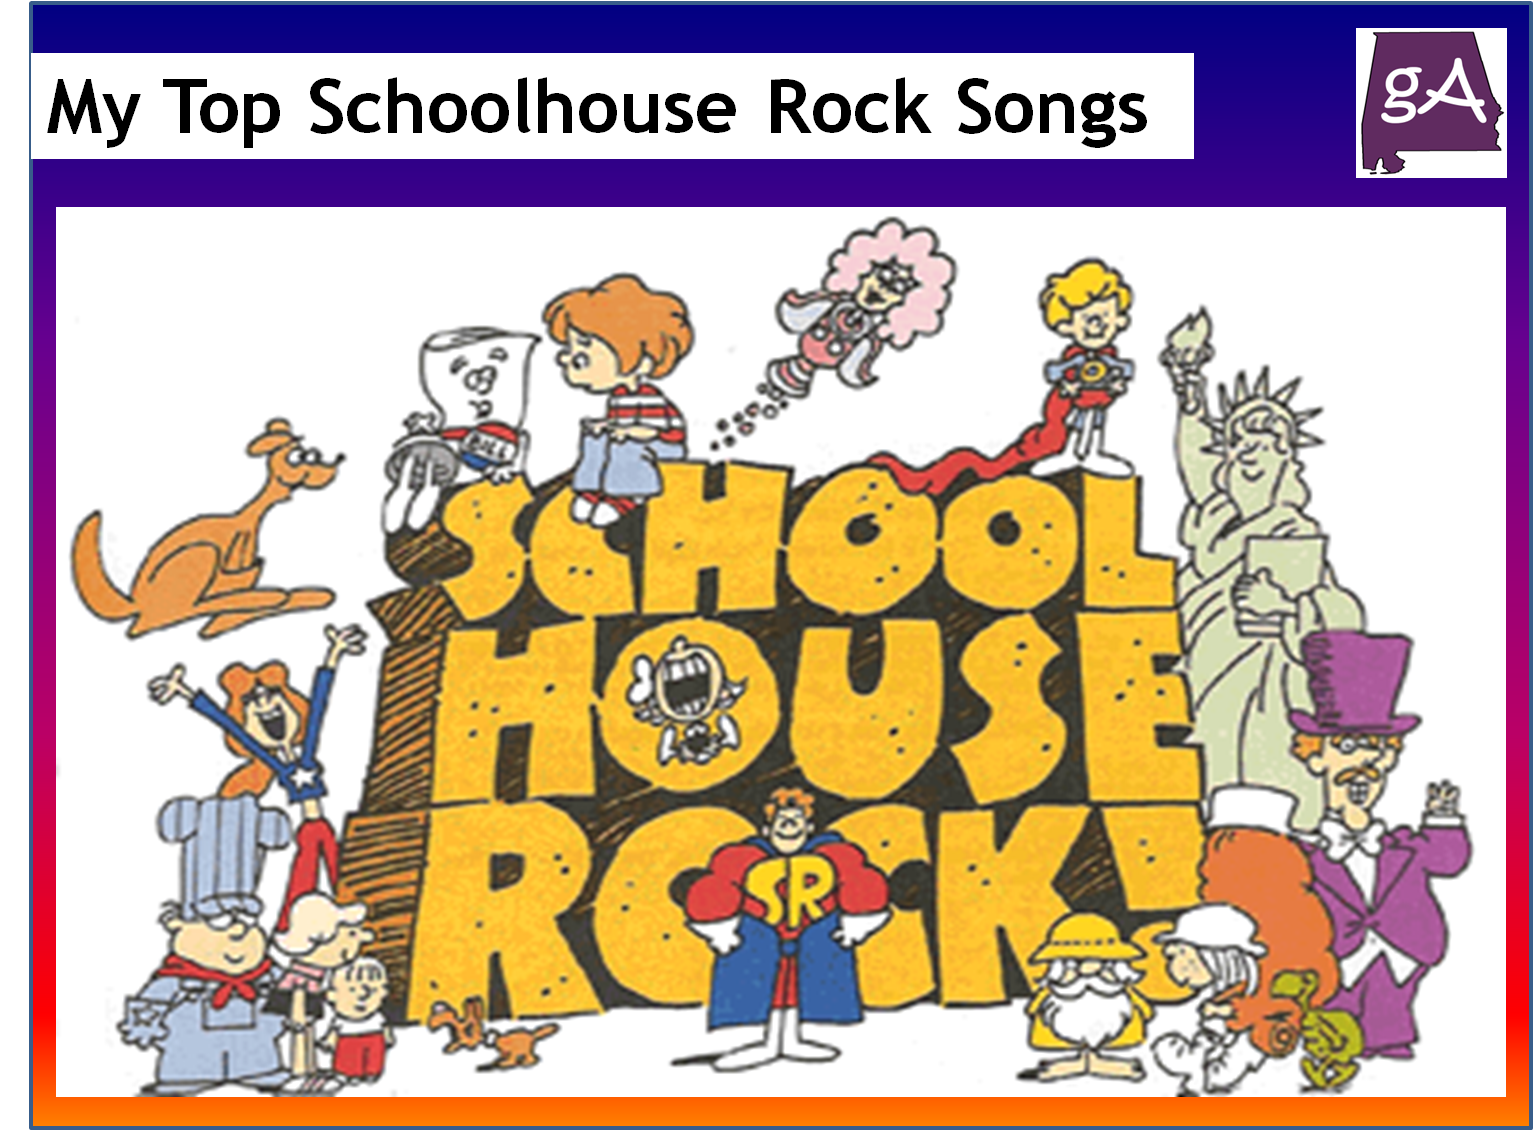 Uncategorized Schoolhouse Rock Adverb my top schoolhouse rock songs plus celebrate with an abc special picture1sfvfvwe